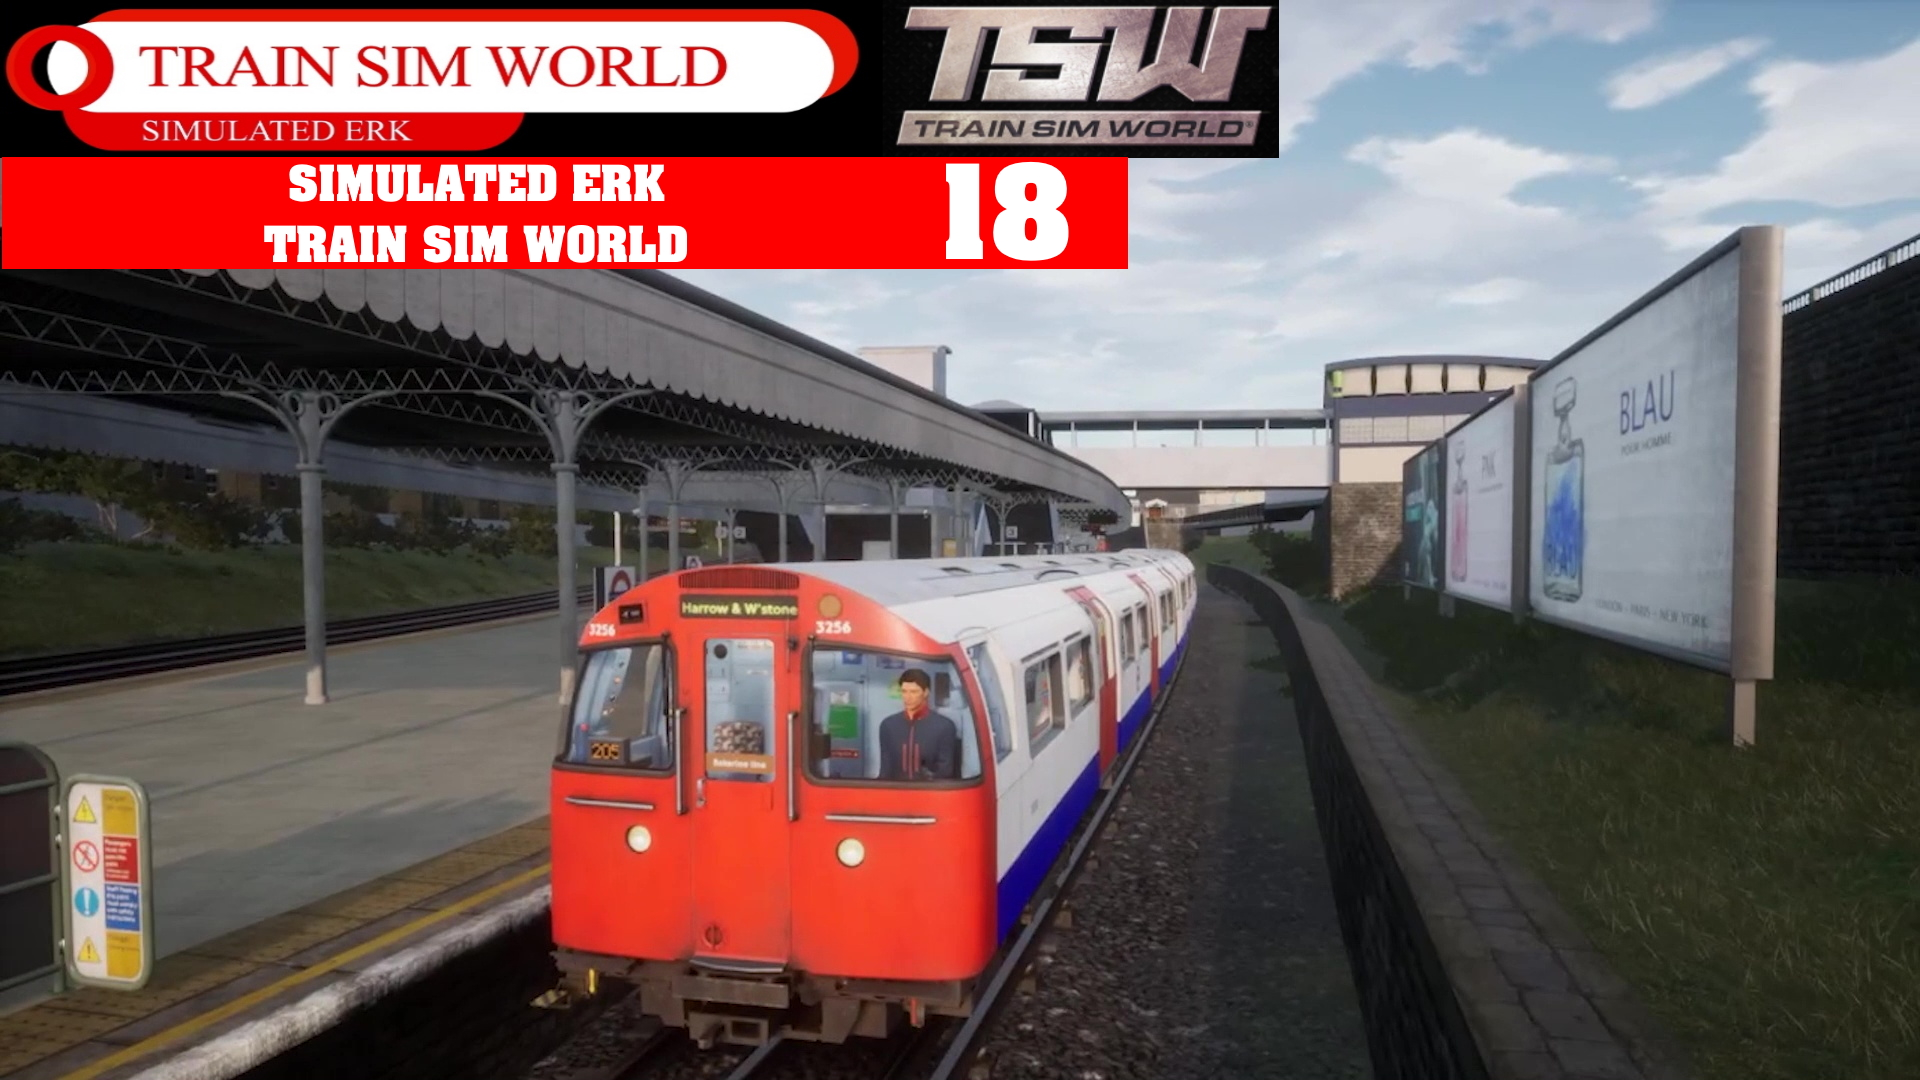 Simulated Erk: Train Sim World episode 18 | Where The Bakerloo Are You?